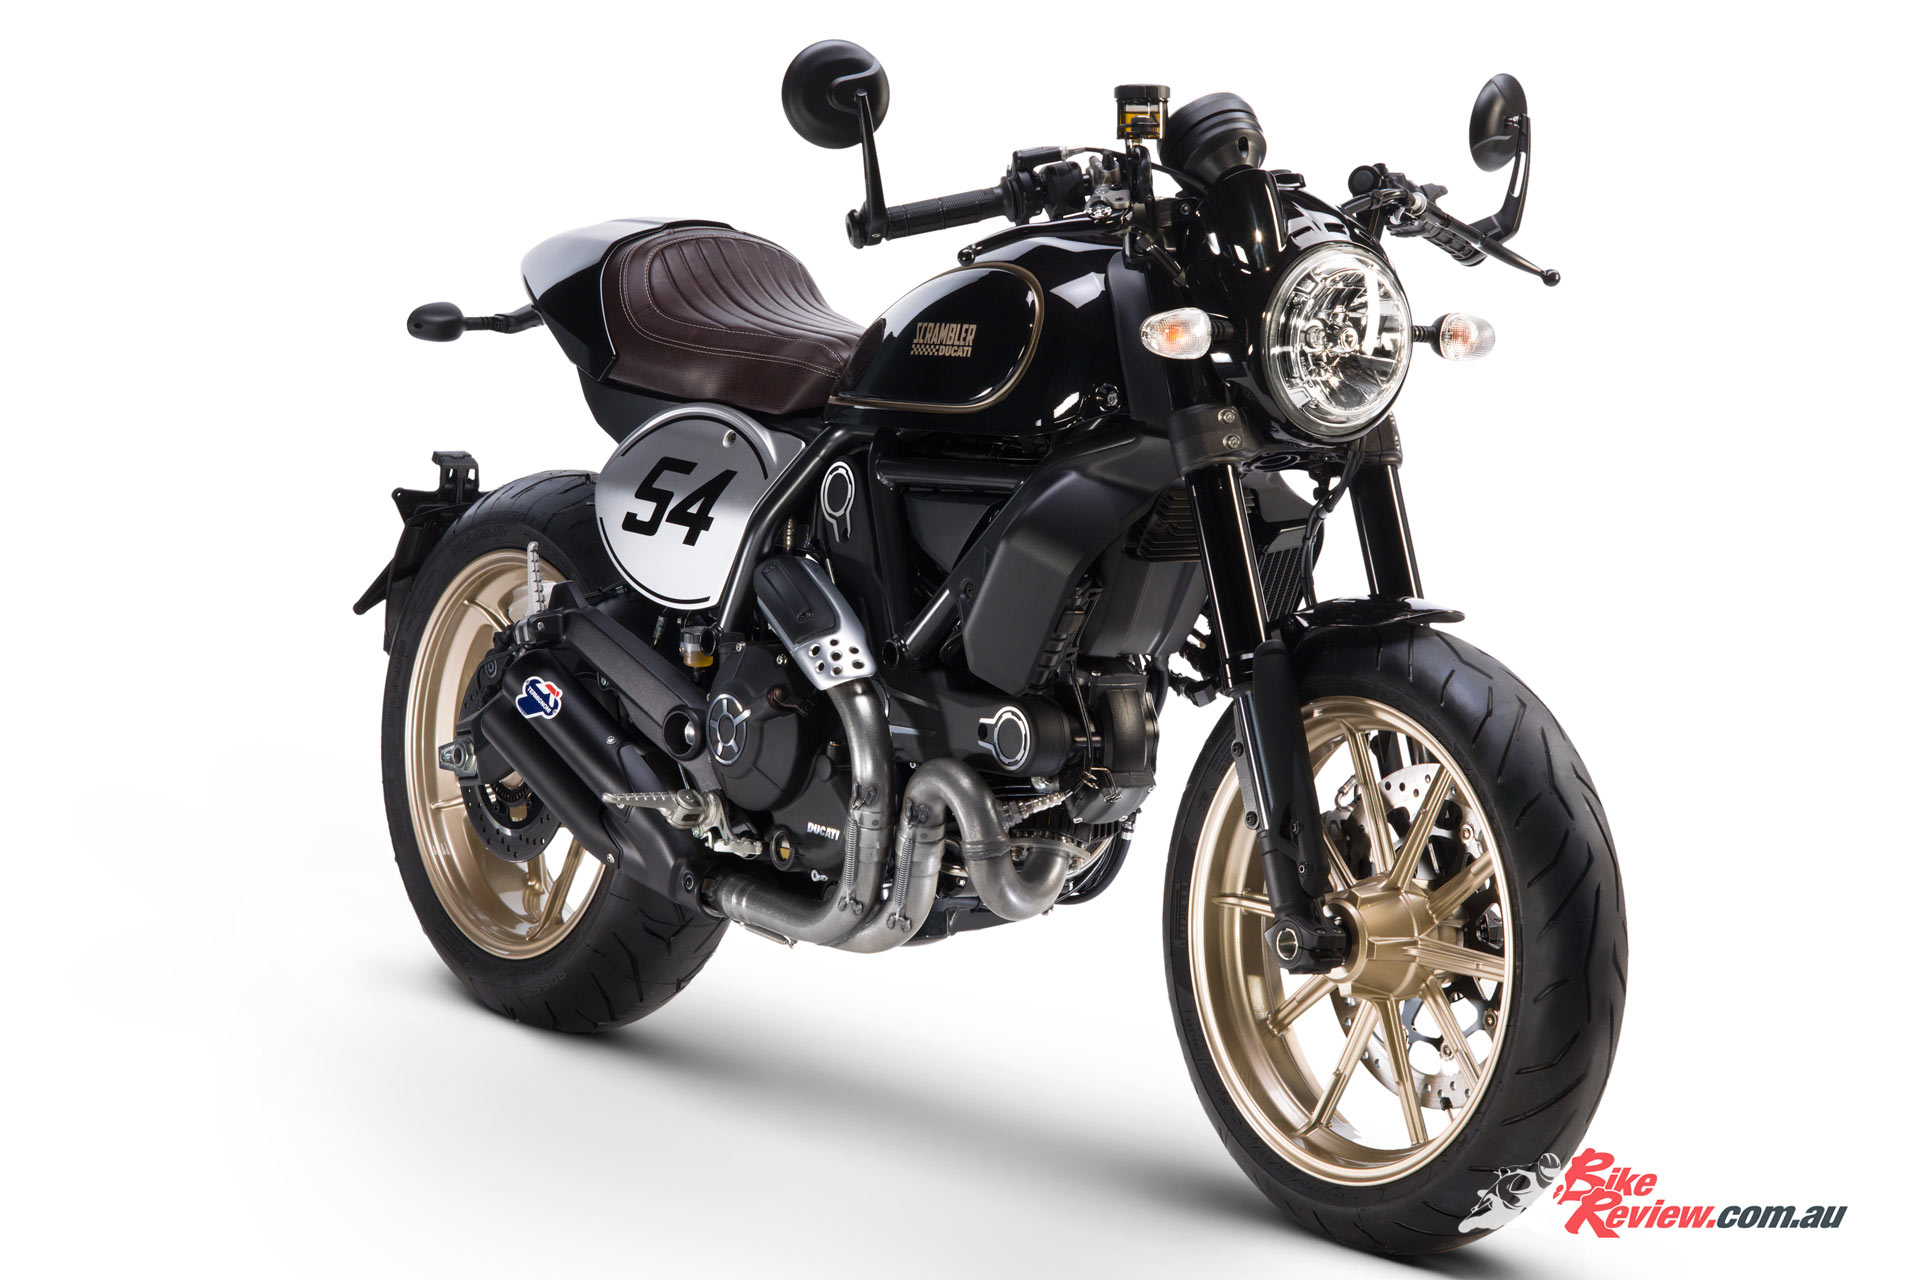 ducati monster 400 wiring diagram with 2017 Ducati Scrambler Cafe Racer on 2017 Ducati Scrambler Cafe Racer additionally 1994 Yamaha Wr 250 Wiring Diagram as well Sportissimo likewise Regulator Rectifier Relay Ignition Coil 6 Pin Cdi Box Kit For Chinese Atv Quad 150cc 200cc 250cc together with Ducati 748 Wiring Diagram.